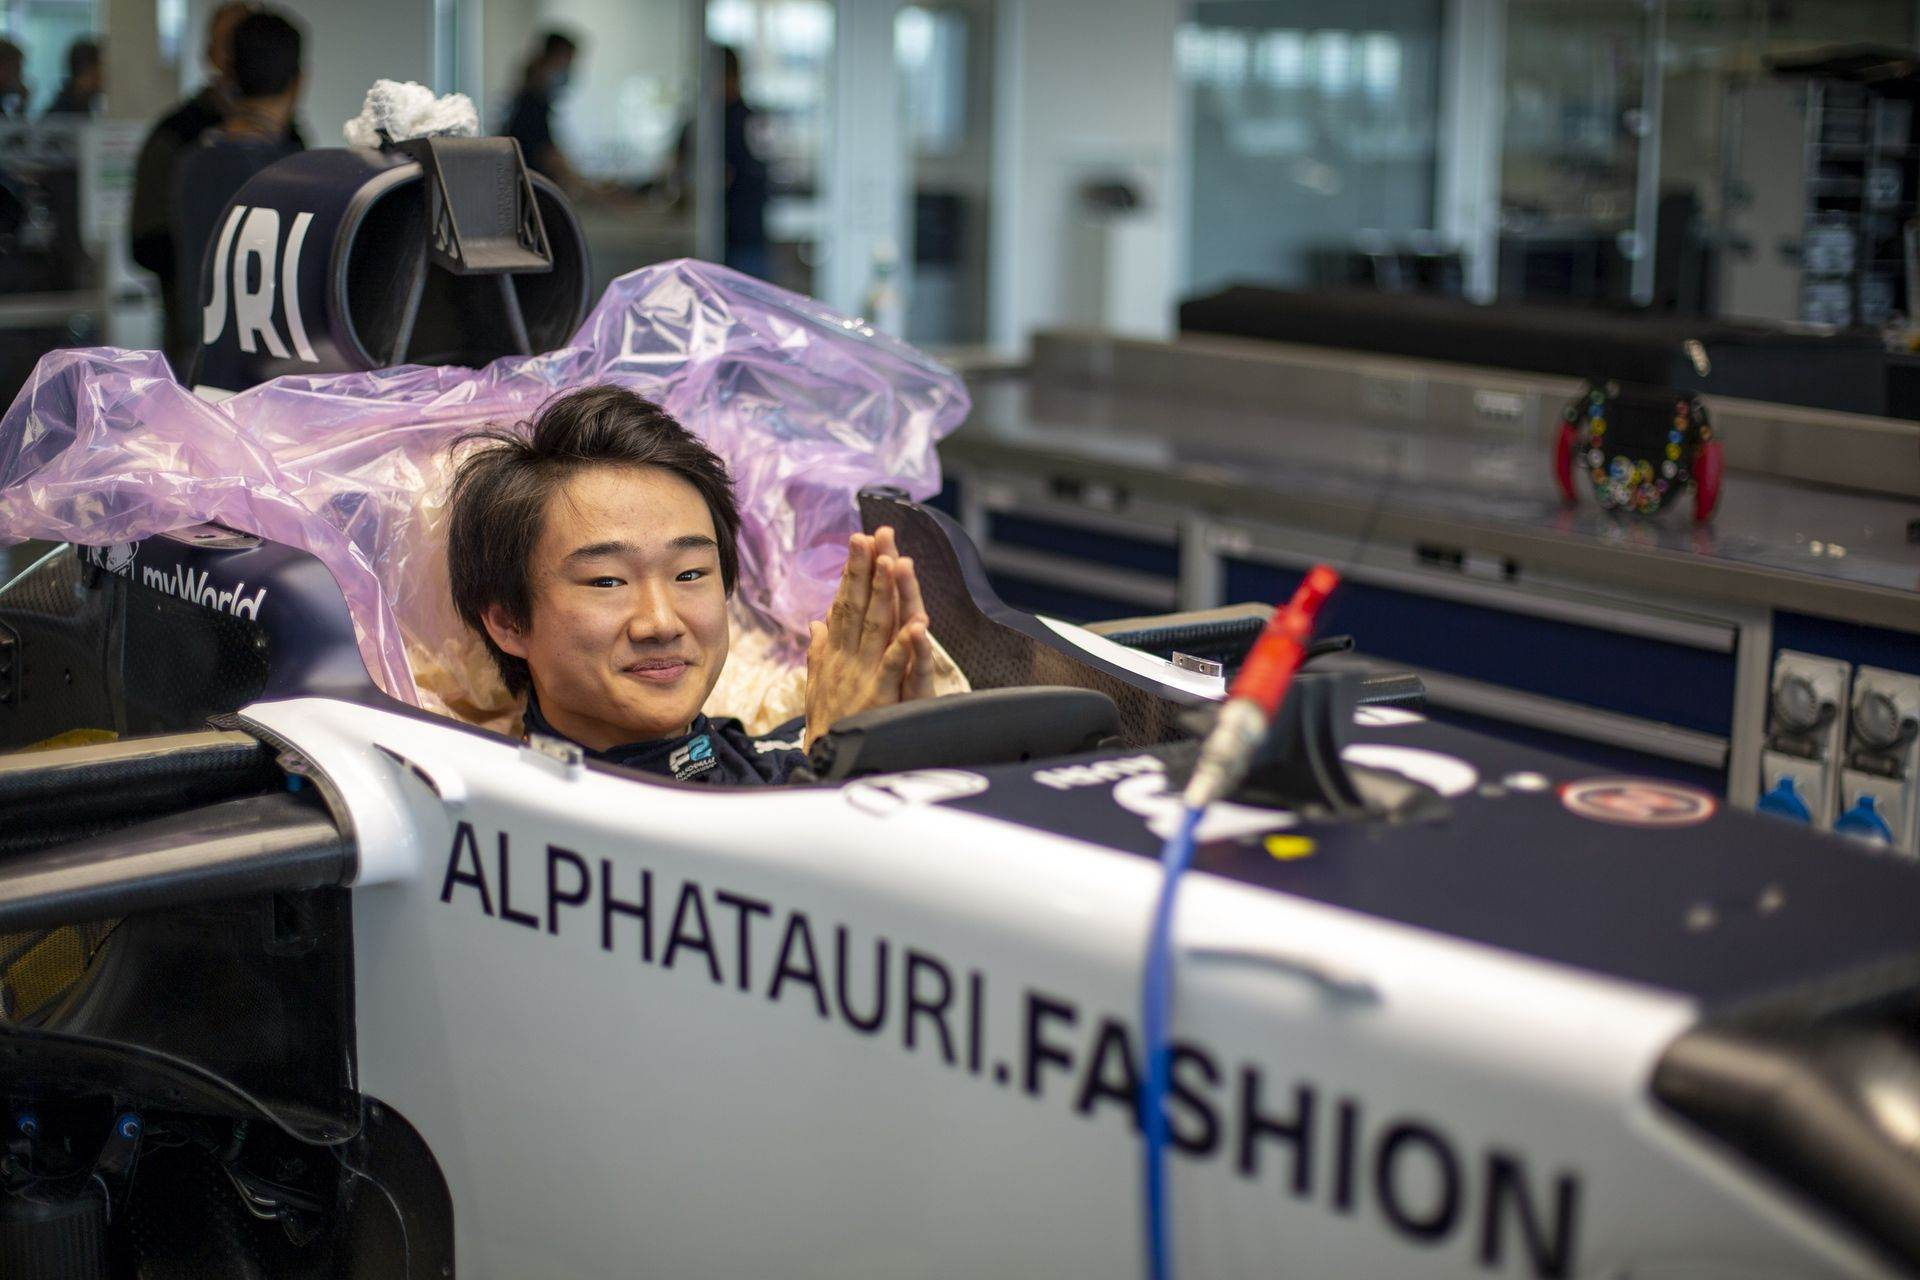 FAENZA, ITALY - OCTOBER 14: Yuki Tsunoda of Japan completes his seat fit at the Scuderia AlphaTauri factory on October 14, 2020 in Faenza, Italy. (Photo by Josh Kruse/Scuderia AlphaTauri) // Josh Kruse / Scuderia AlphaTauri / Red Bull Content Pool // SI202010140220 // Usage for editorial use only //